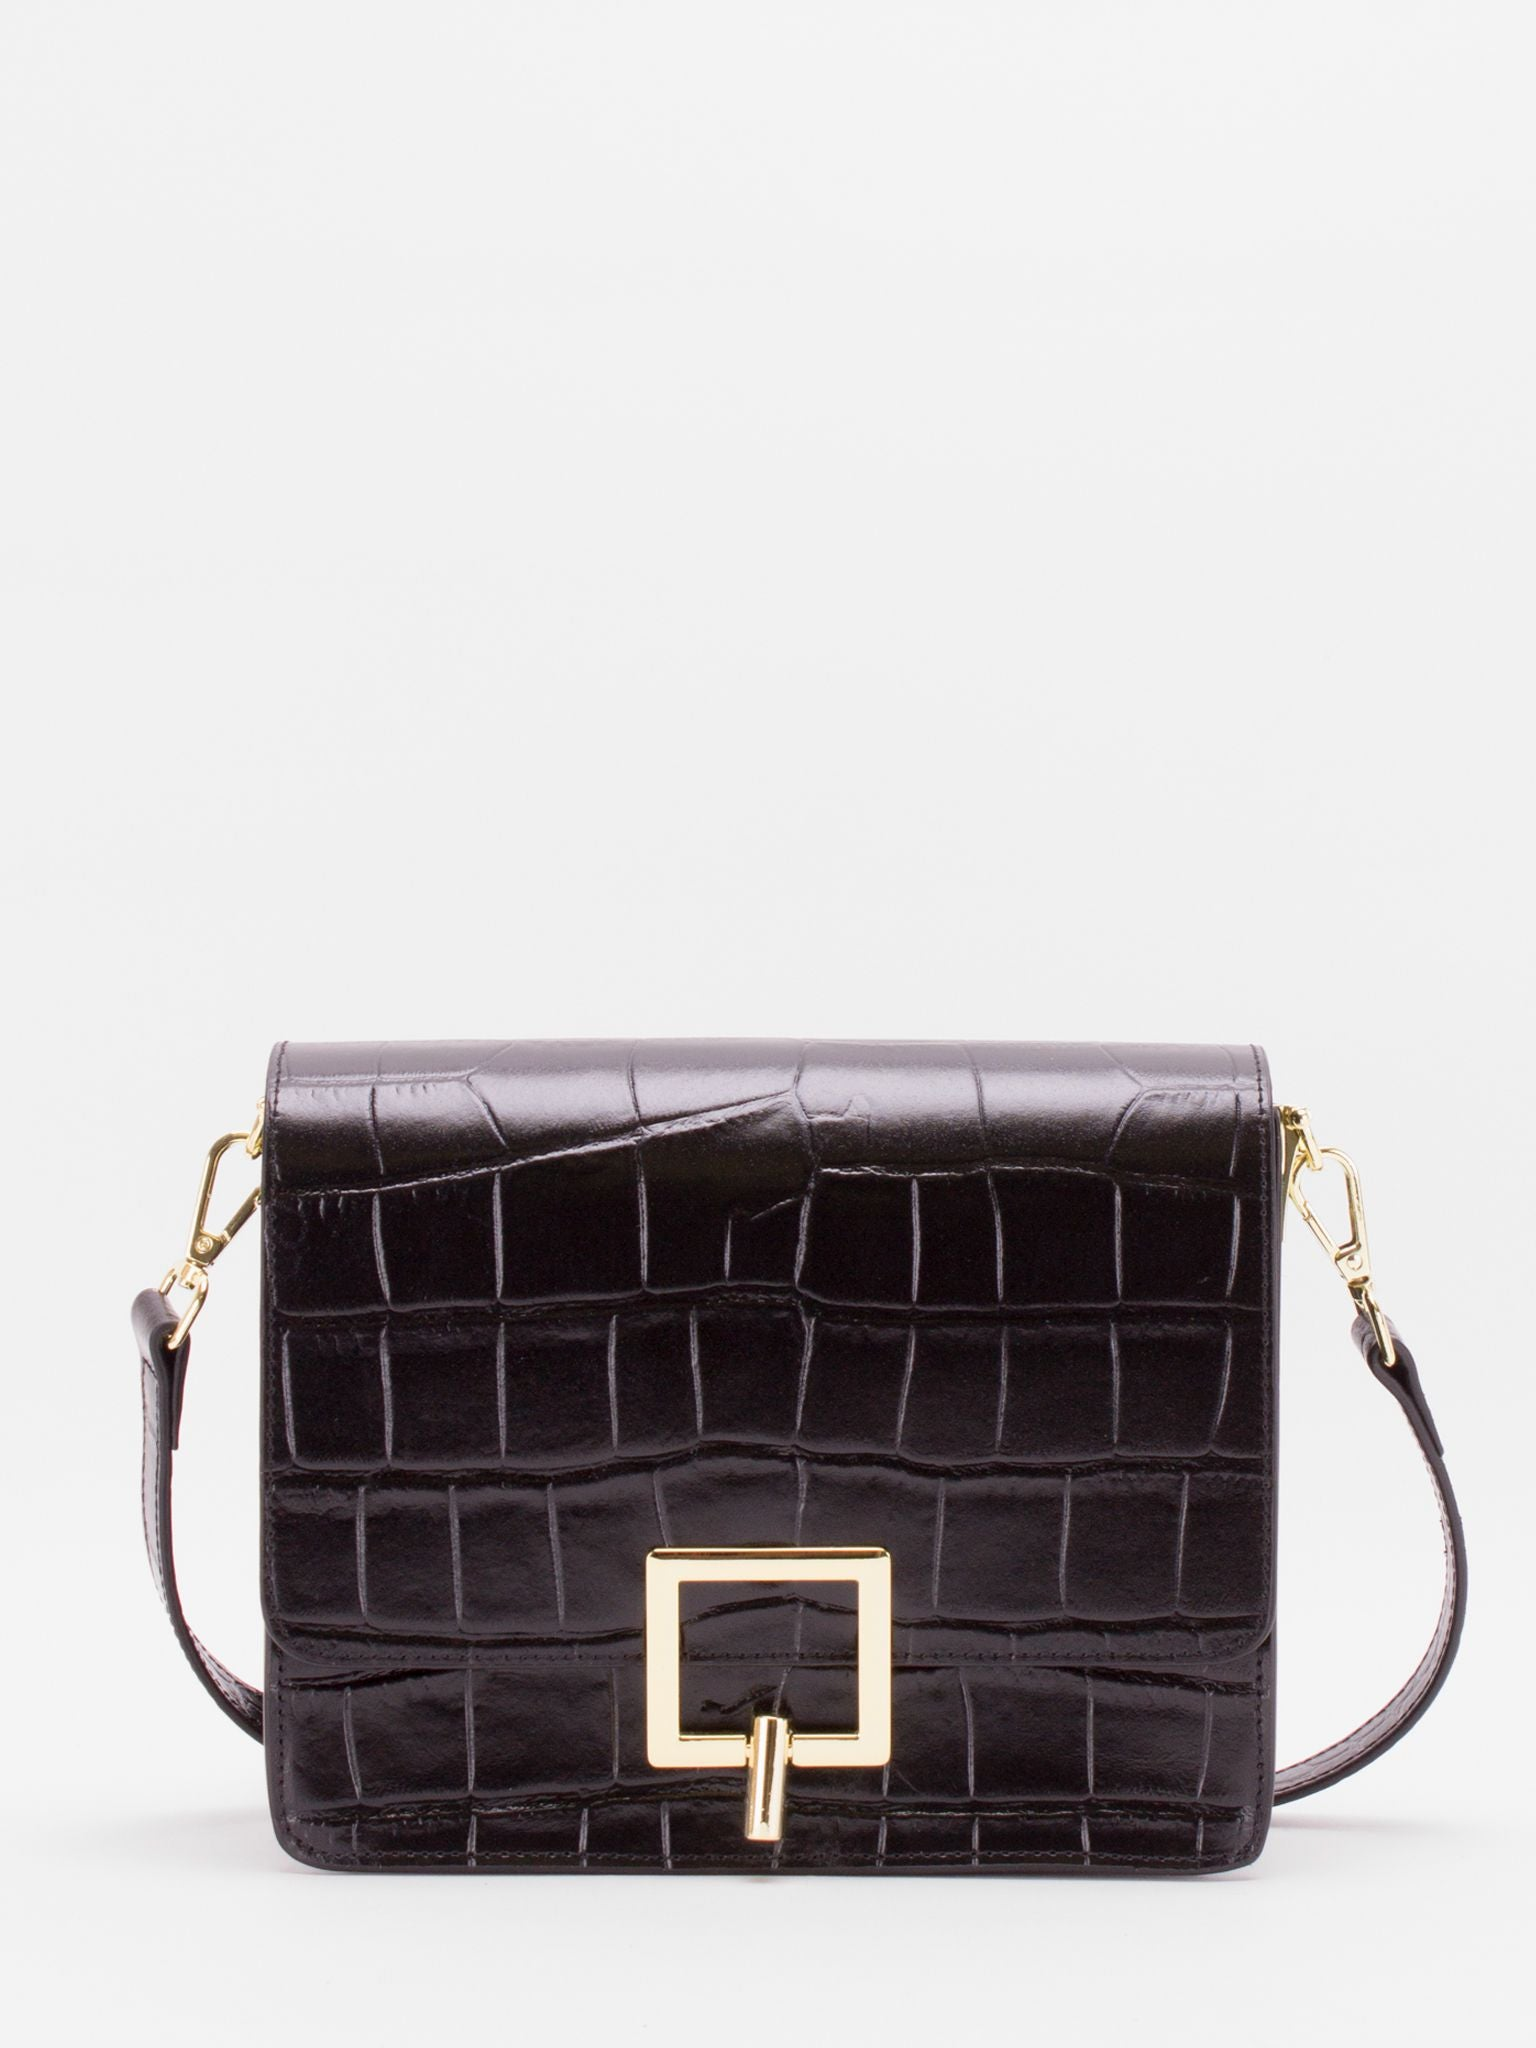 Nelly Croc-Embossed Leather Bag - Black